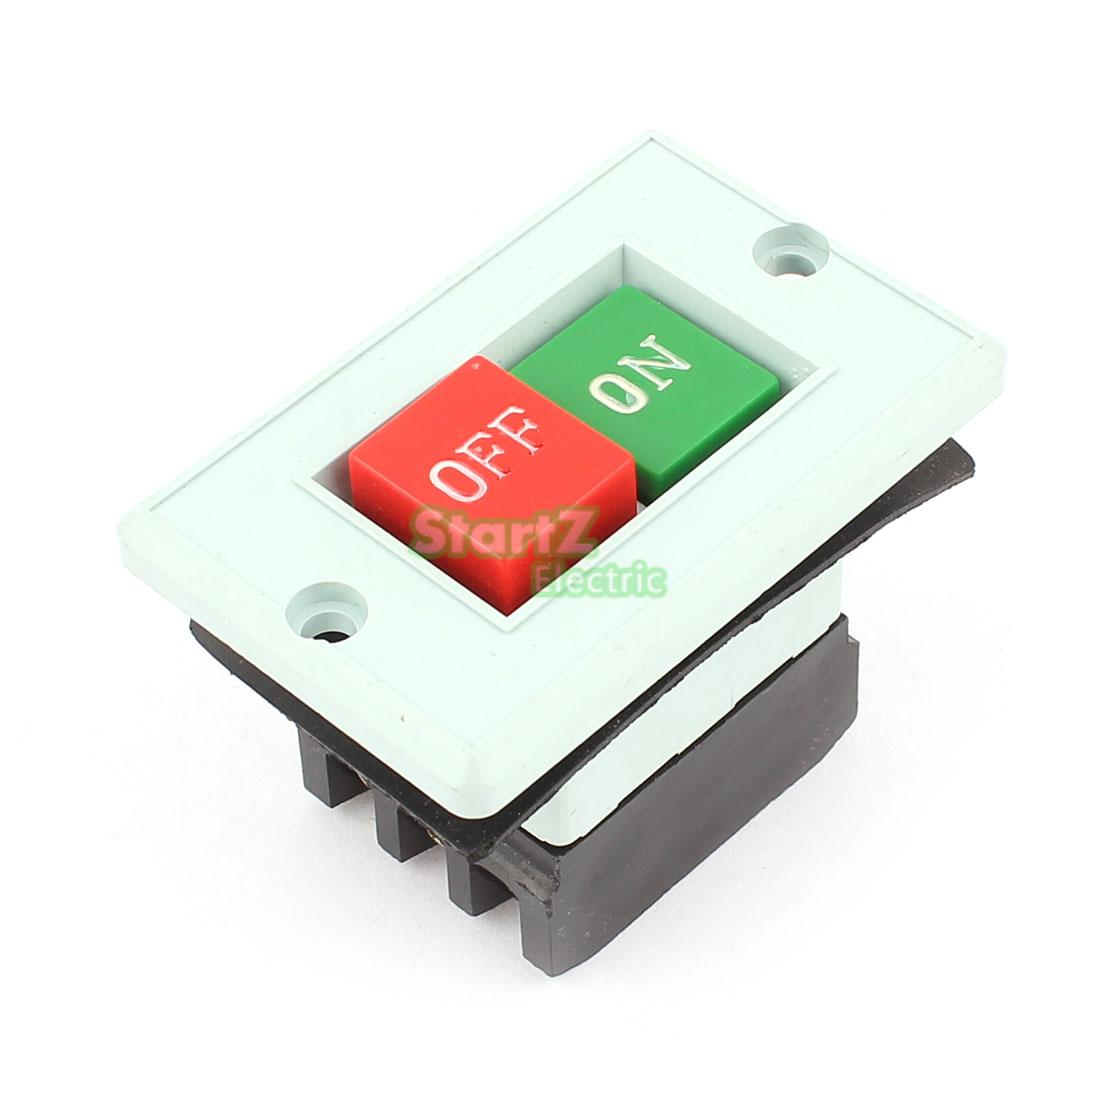 AC 380V 5A 6 Terminals ON/OFF  Motor Control Rectangle Plastic Power Push Button Switch Station  LC3-5 10a 250v 380v on off waterproof push button switch for cutting machine drill switch plastic motor best price